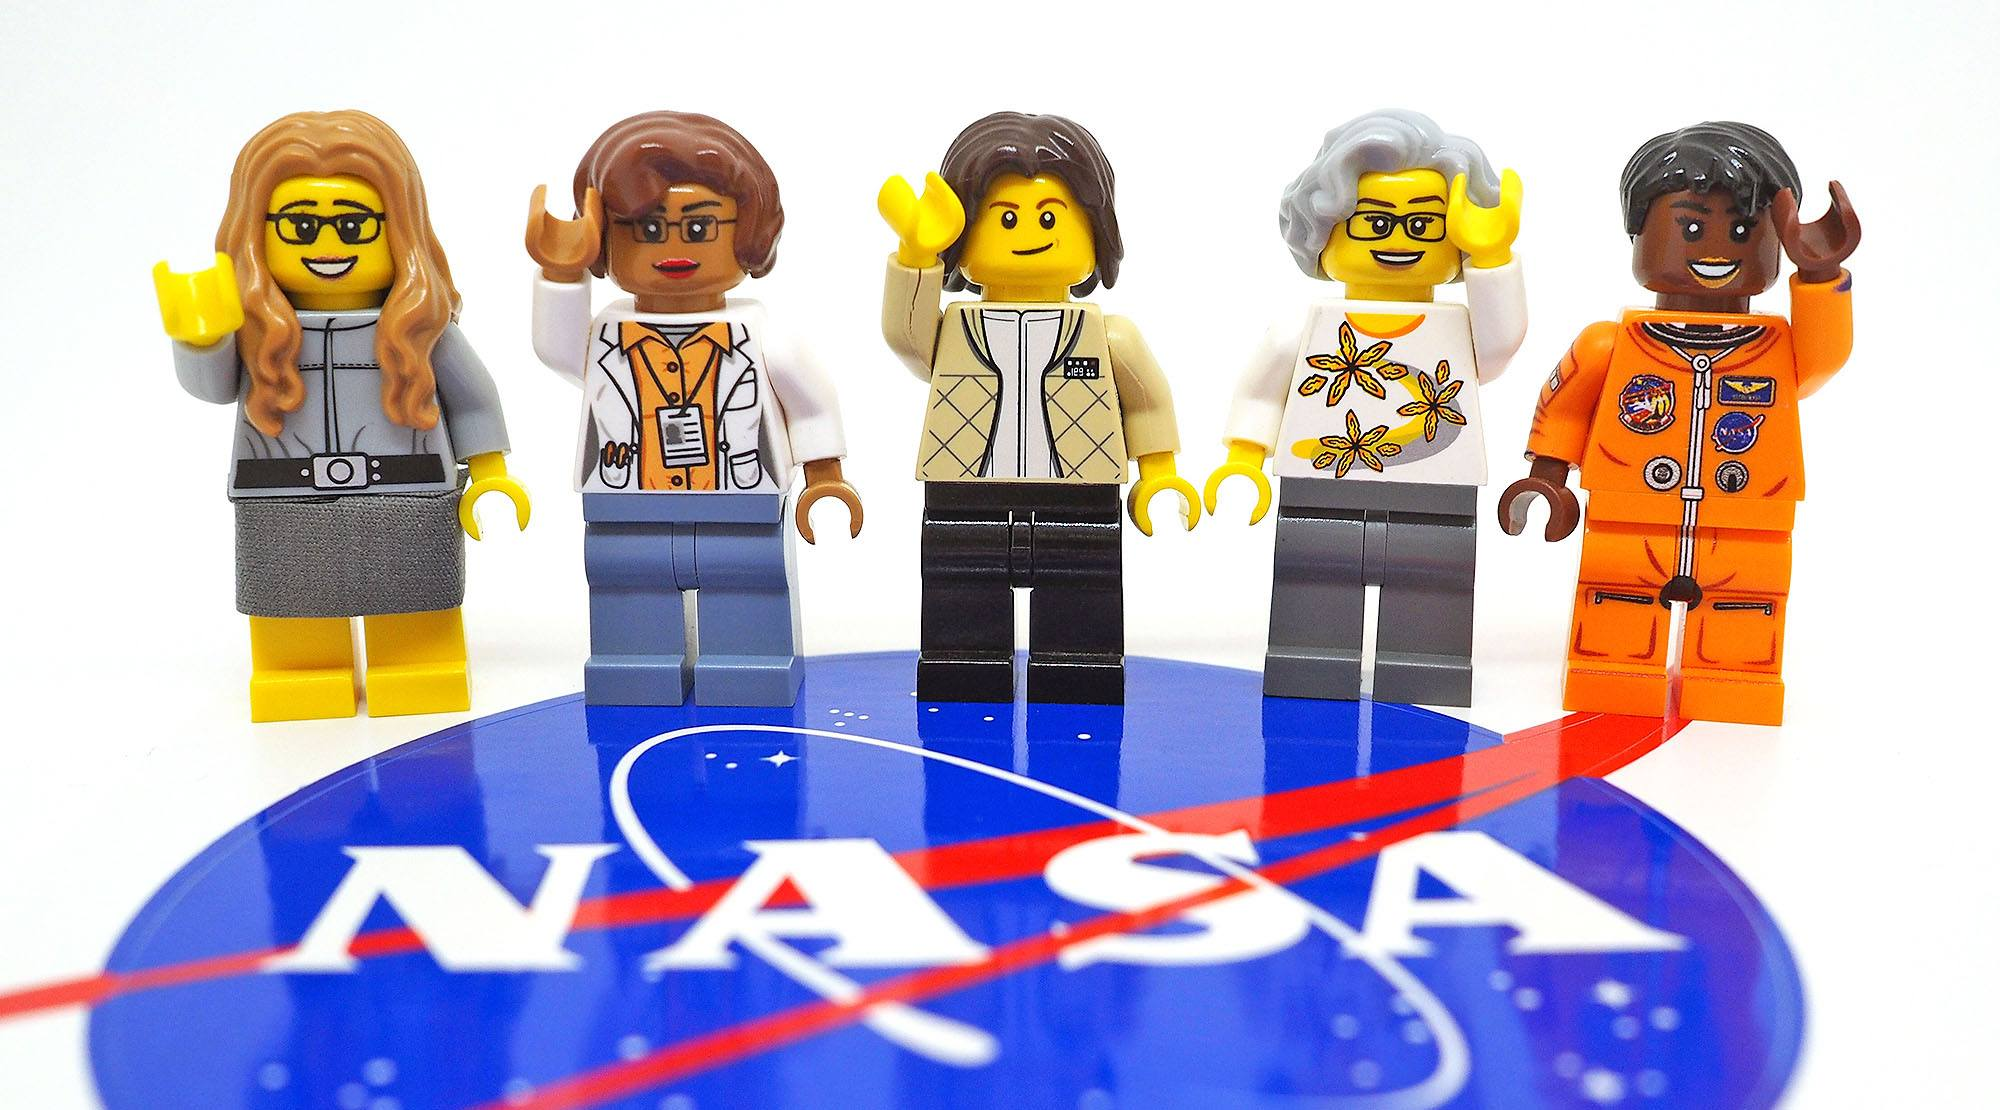 LEGO to make Women of NASA set of female space pioneers (PHOTOS)